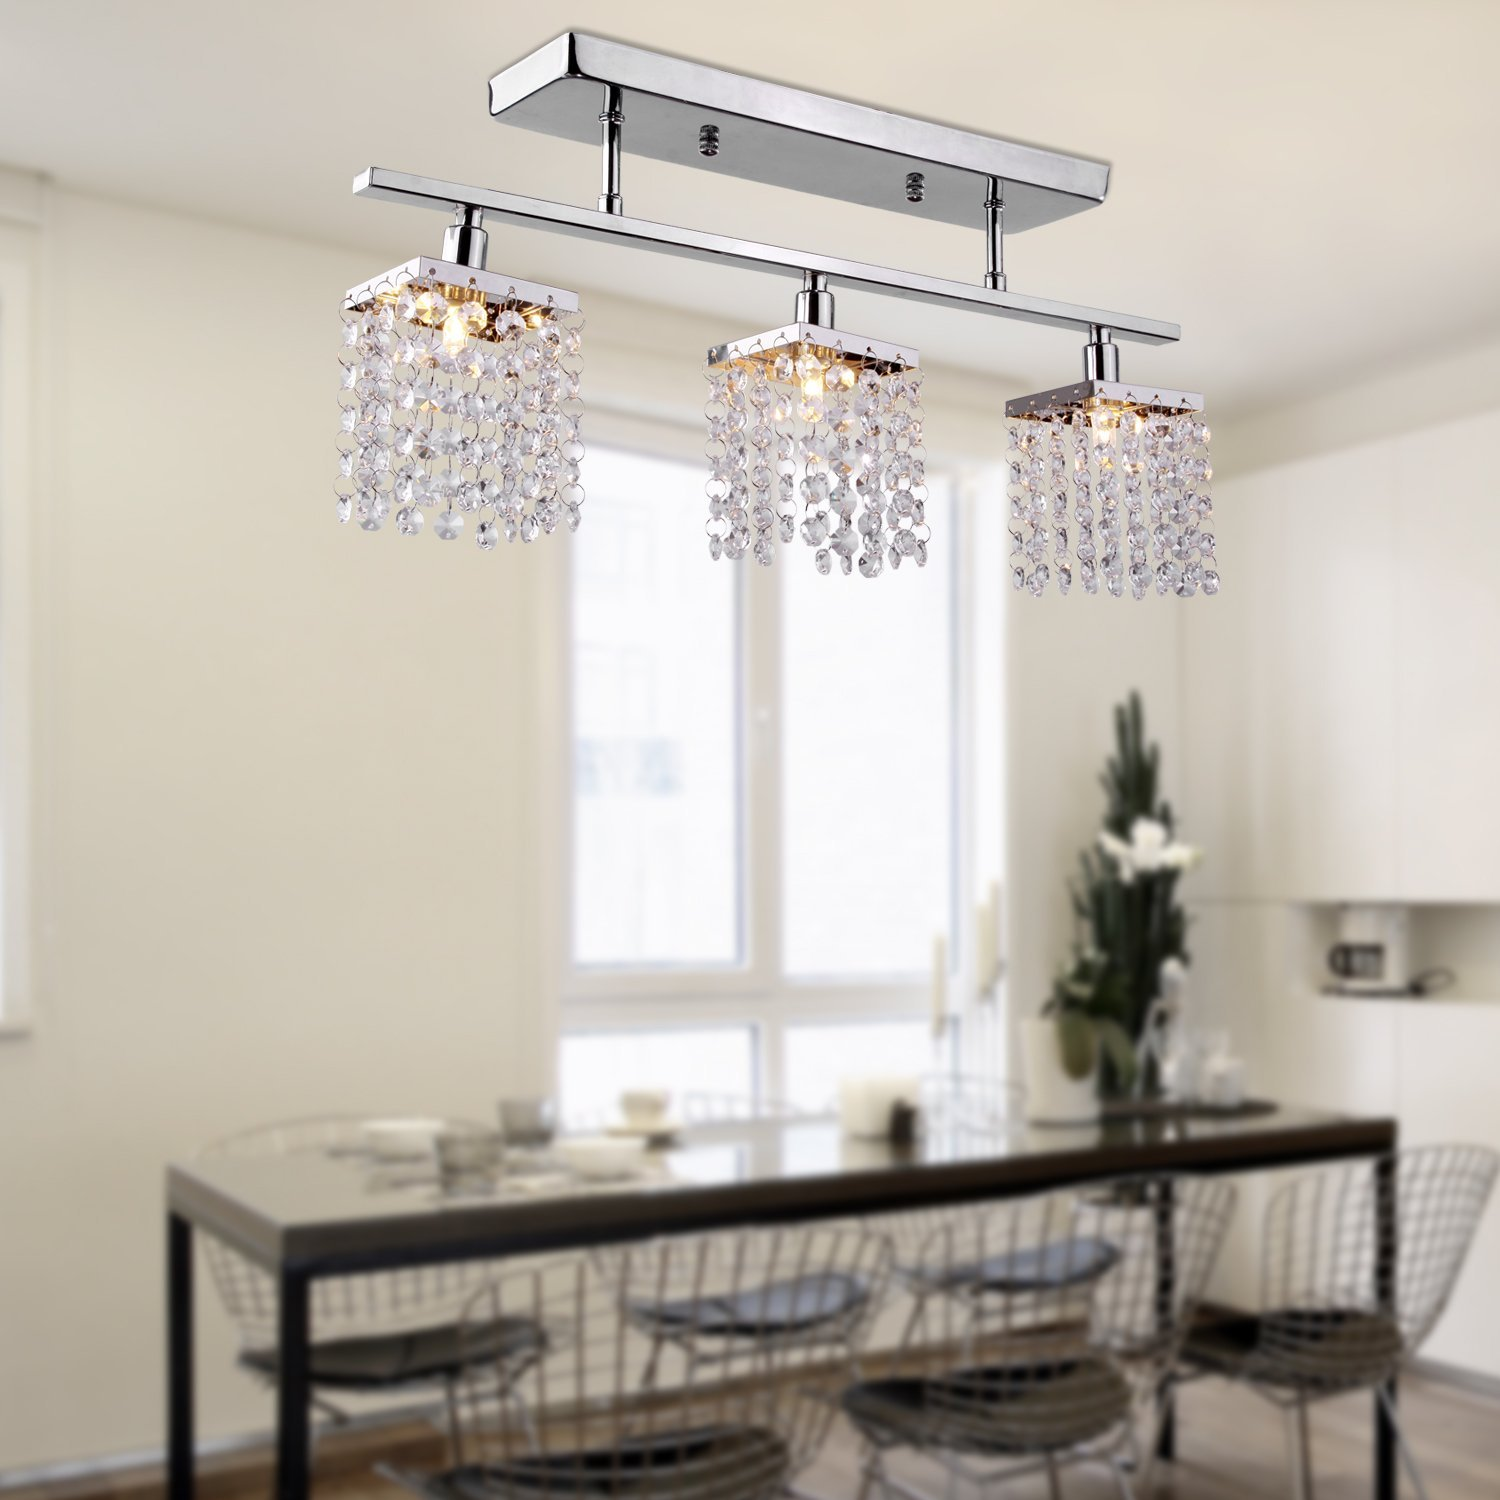 3 Light Hanging Crystal Linear Chandelier with Fixture Modern